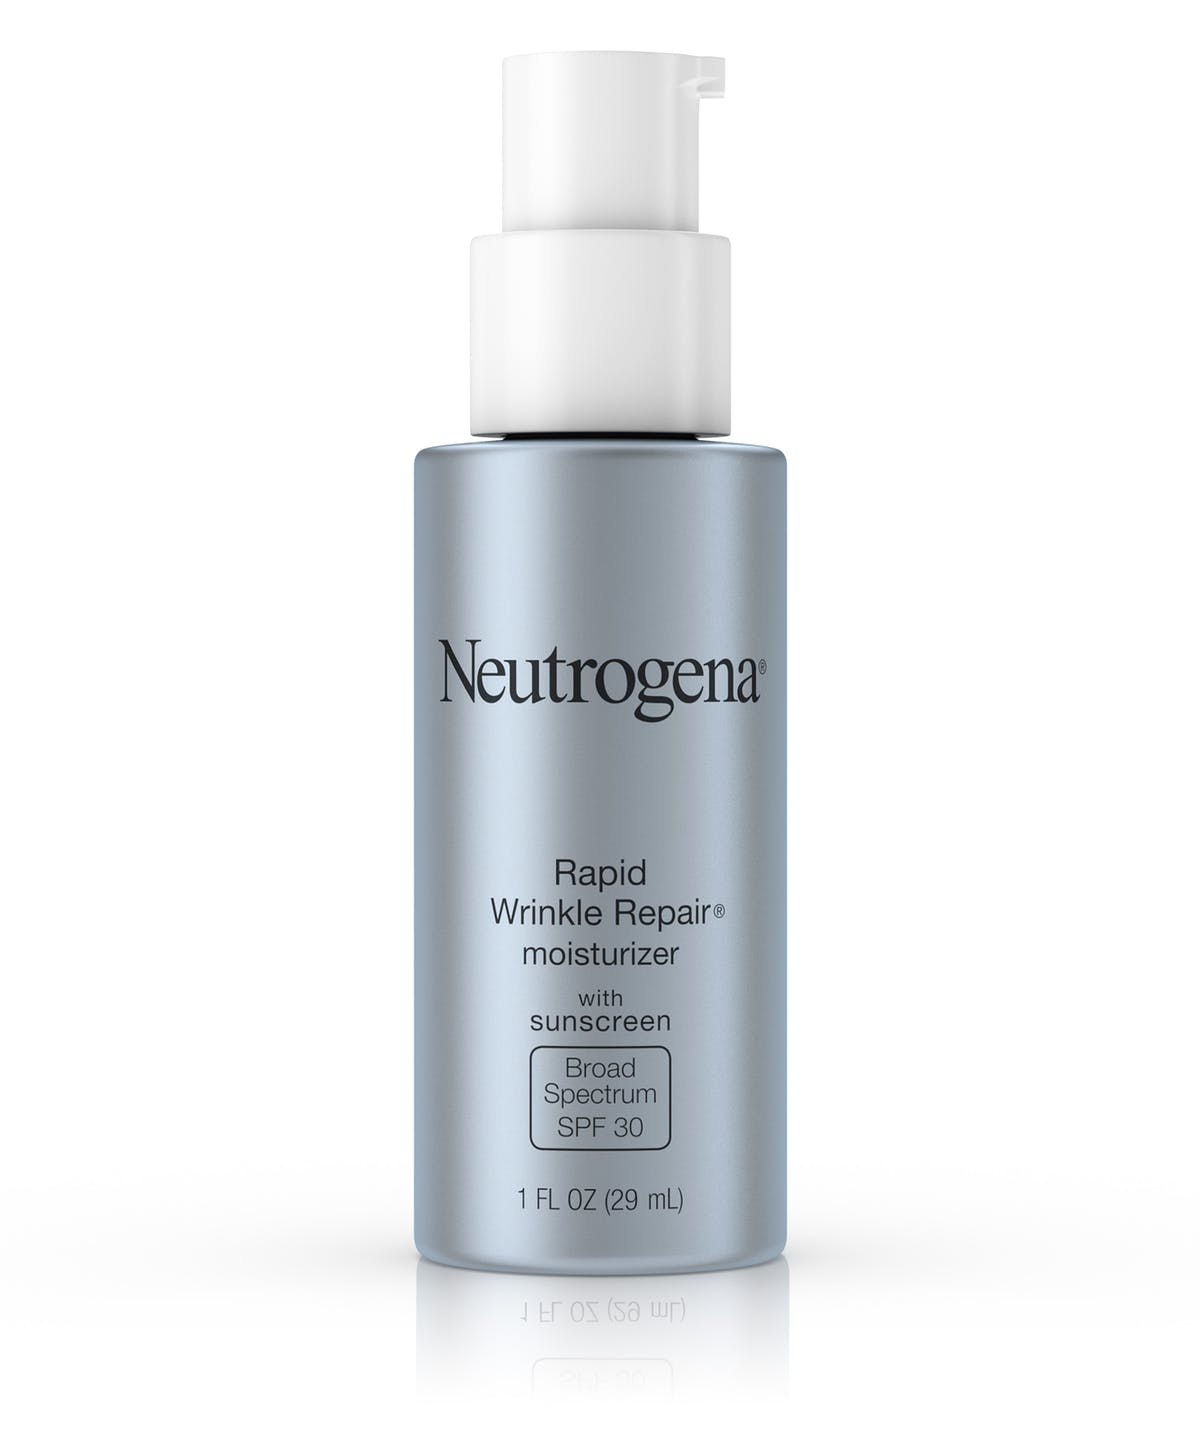 Rapid wrinkle repair daily moisturizer with SPF 30